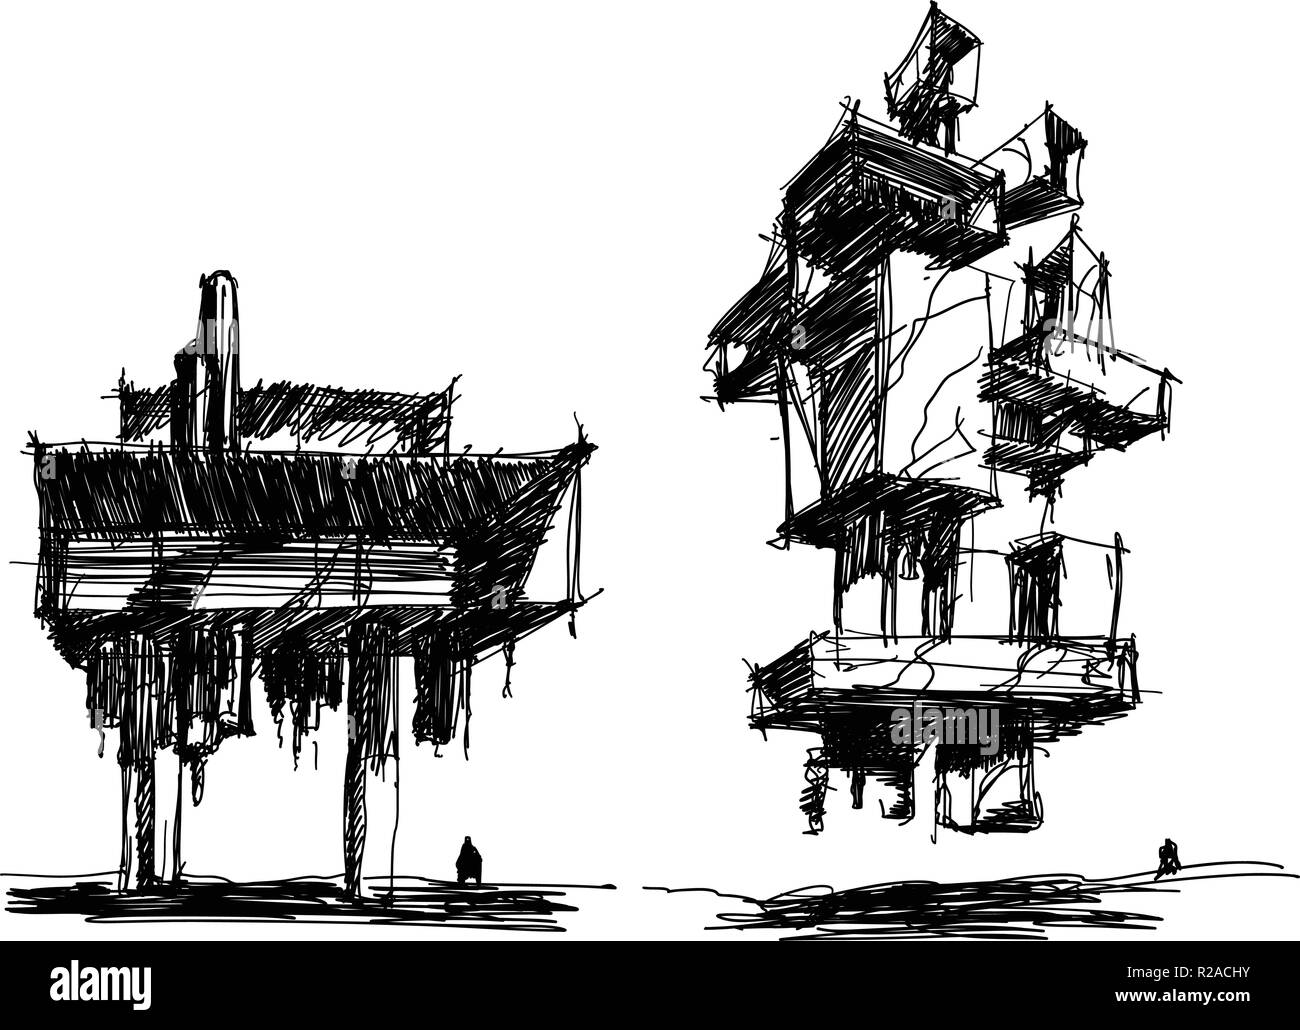 two hand drawn architectectural sketches of a modern abstract futuristic architecture with people around - Stock Image